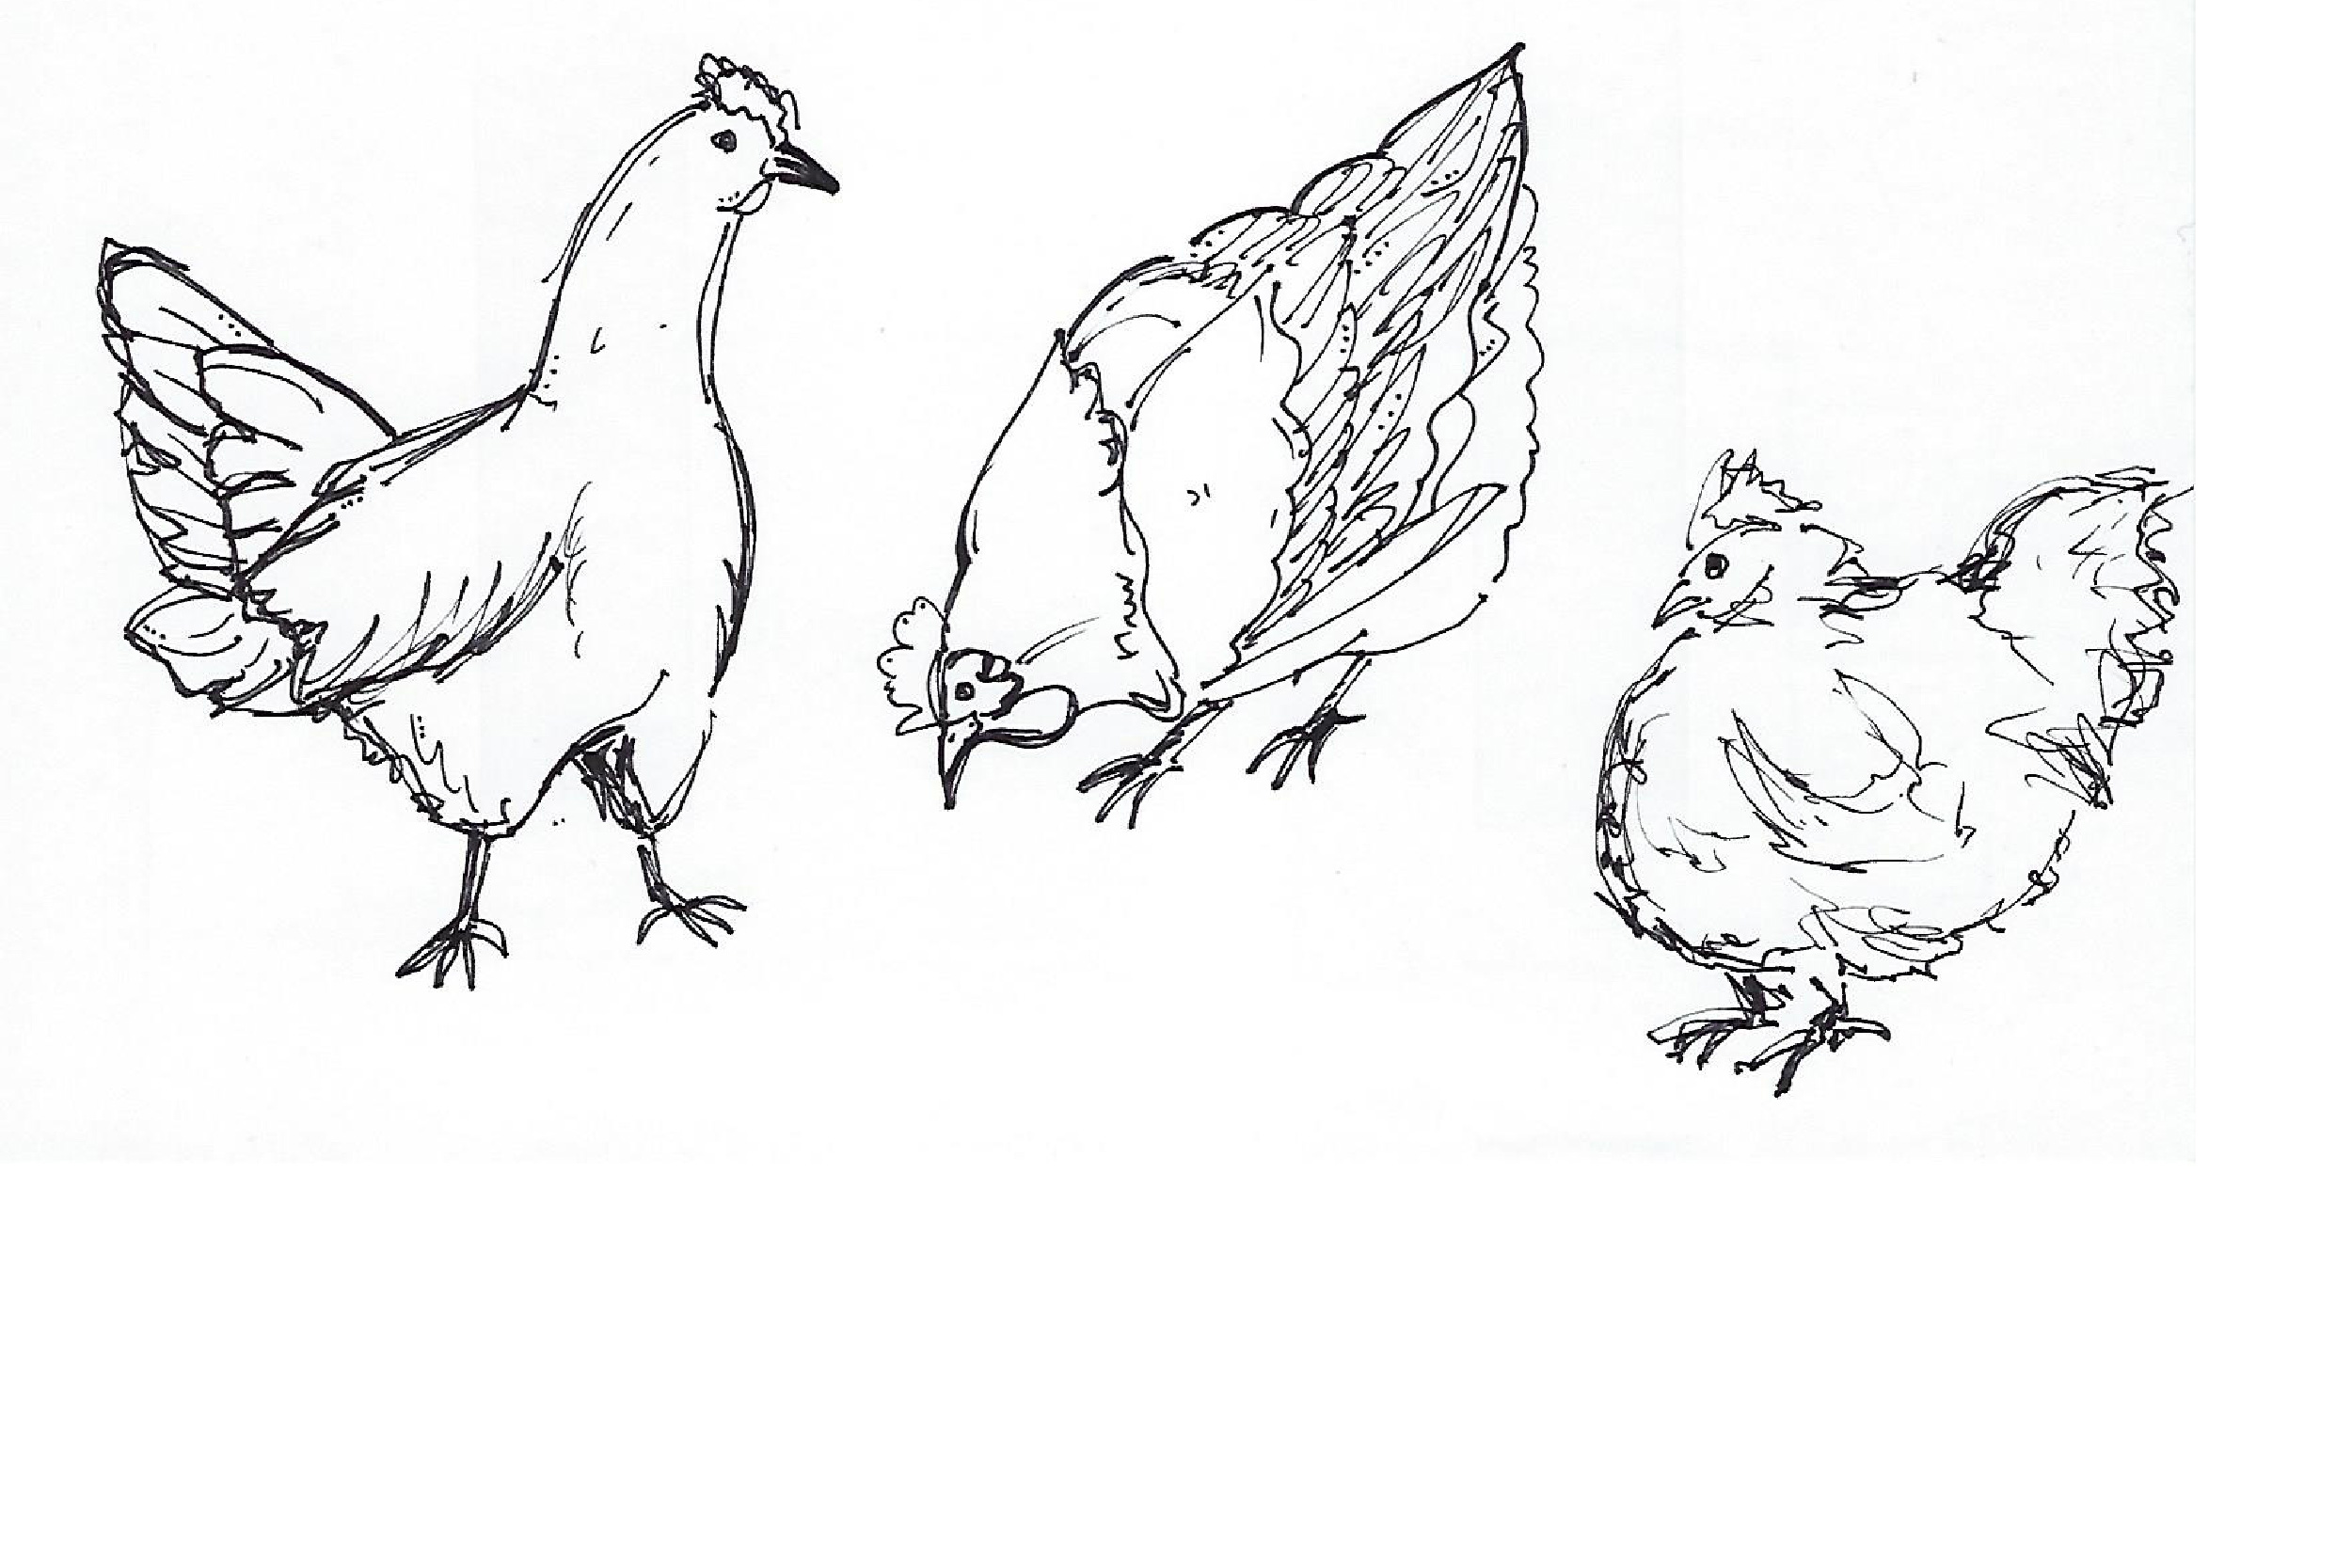 chickensketch-01.jpg